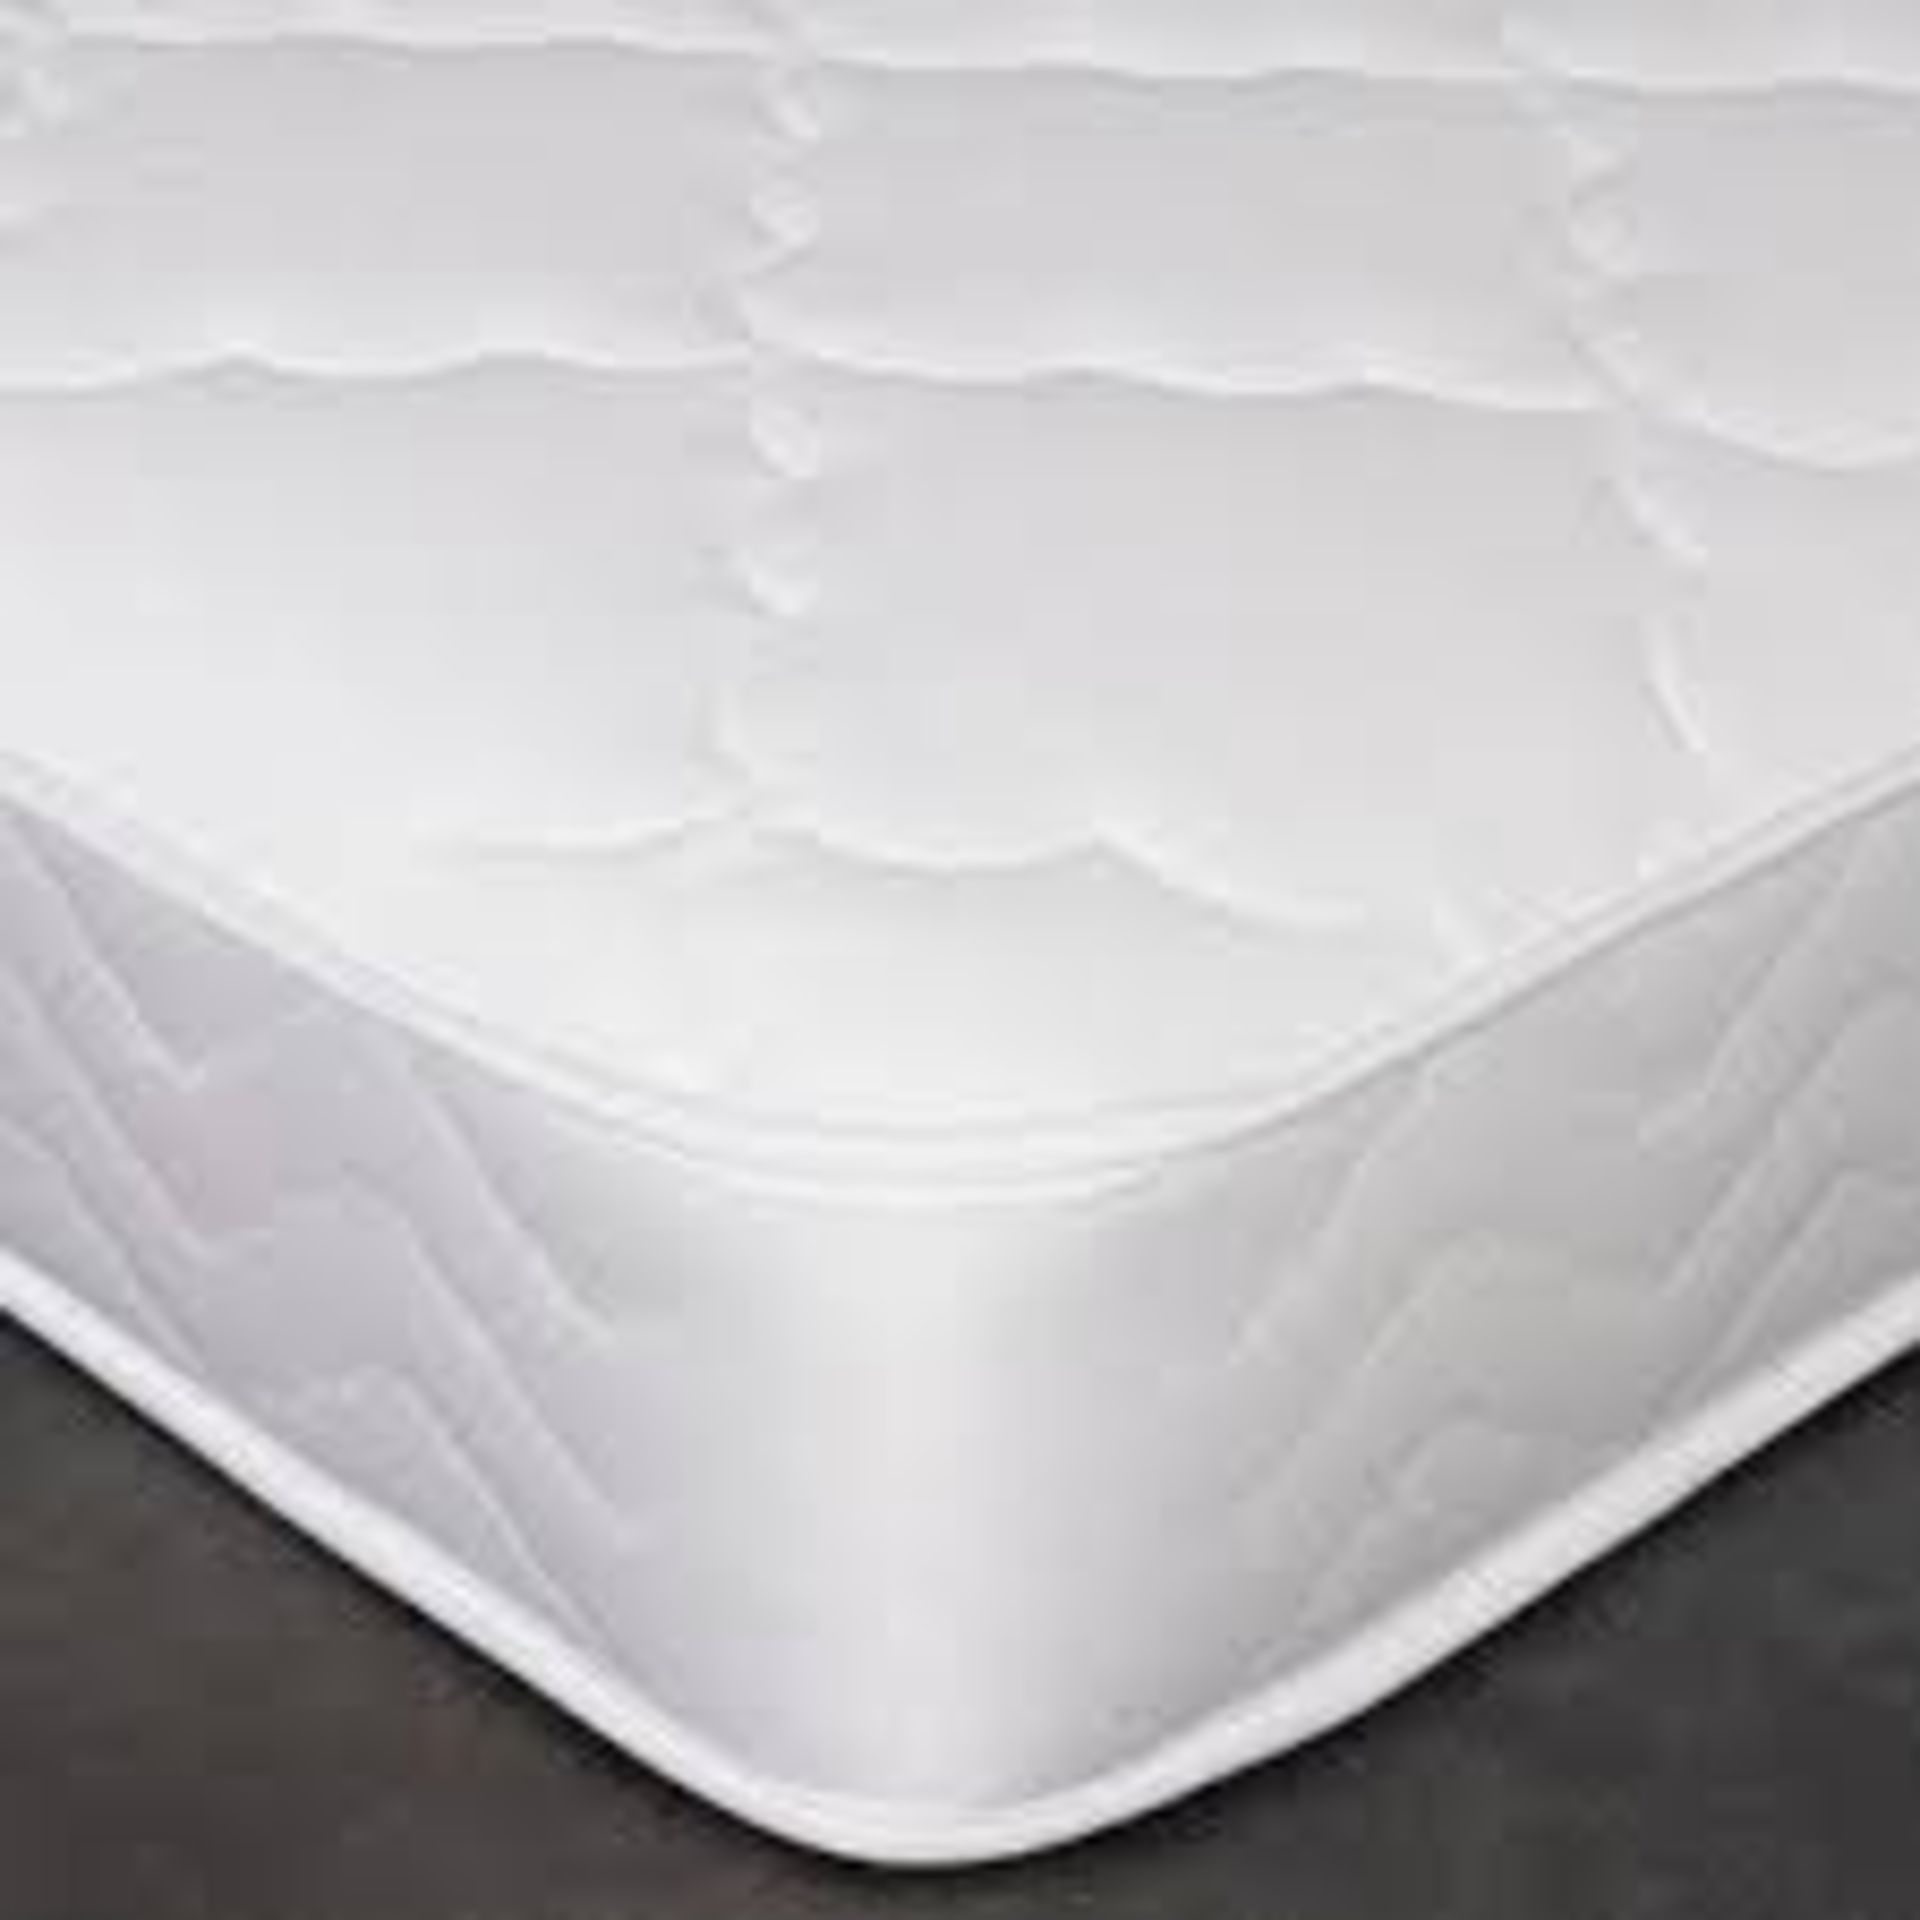 Lot 409 - Boxed Double Essential Orthopaedic Small Double Mattress RRP £150 (Pallet No 173026) (Public Viewing